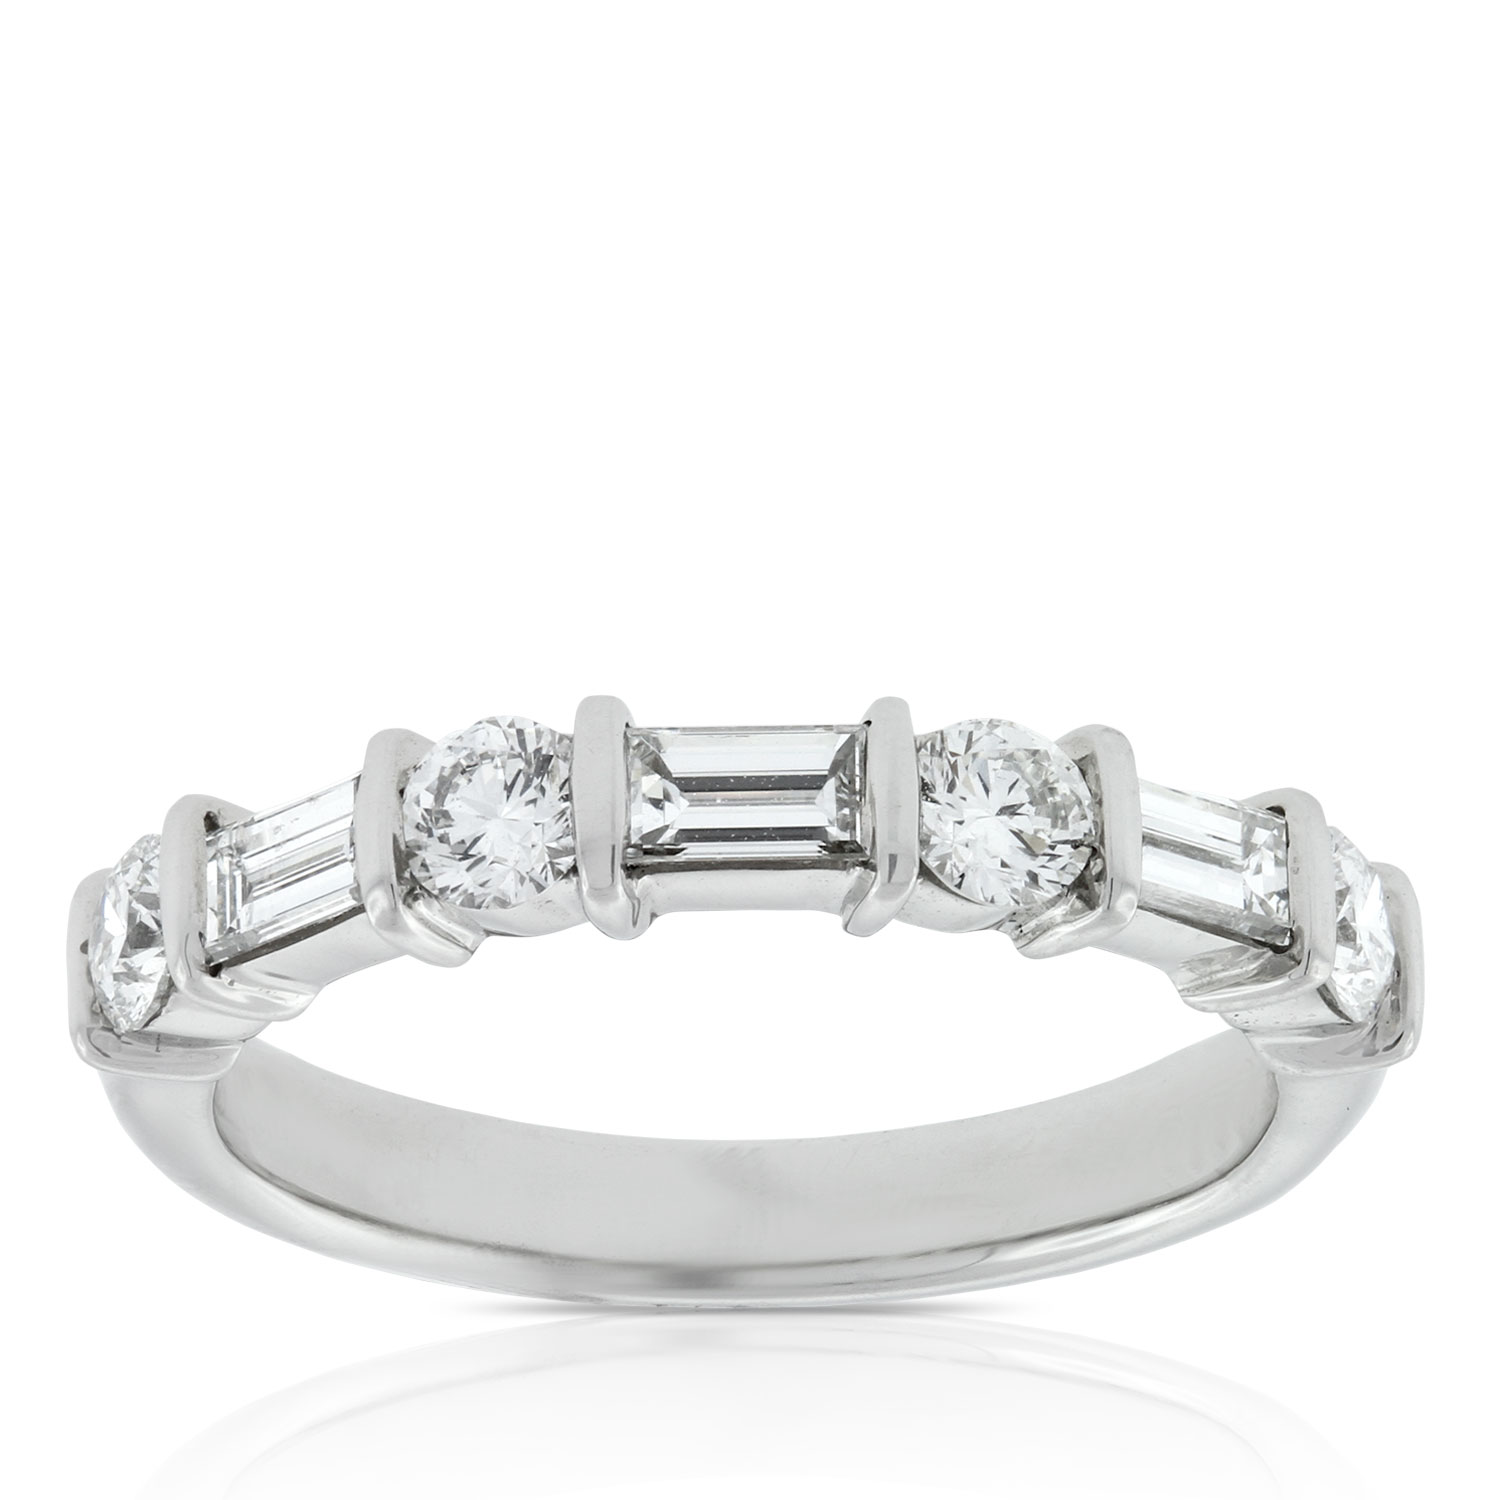 band ctw next diamond ring product baguette rings platinum previous eternity wedding